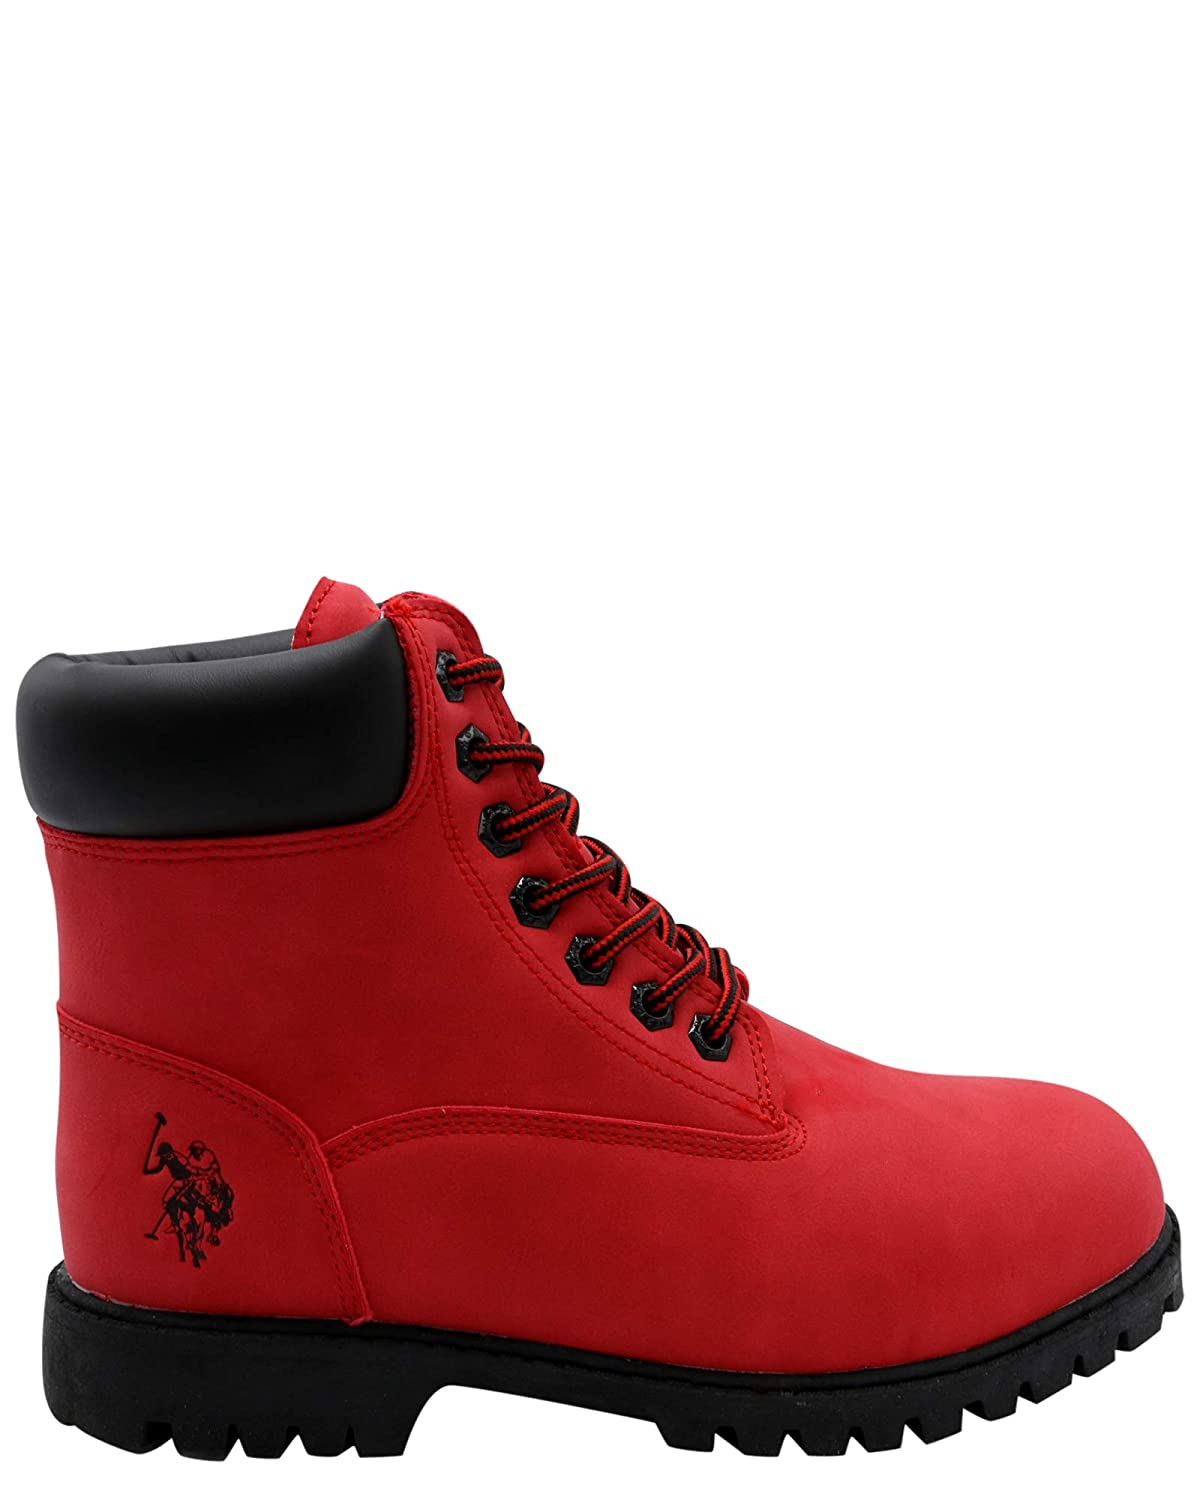 eb10d356b1f US Polo Assn. Men's Owen Hi Boot,Red,10